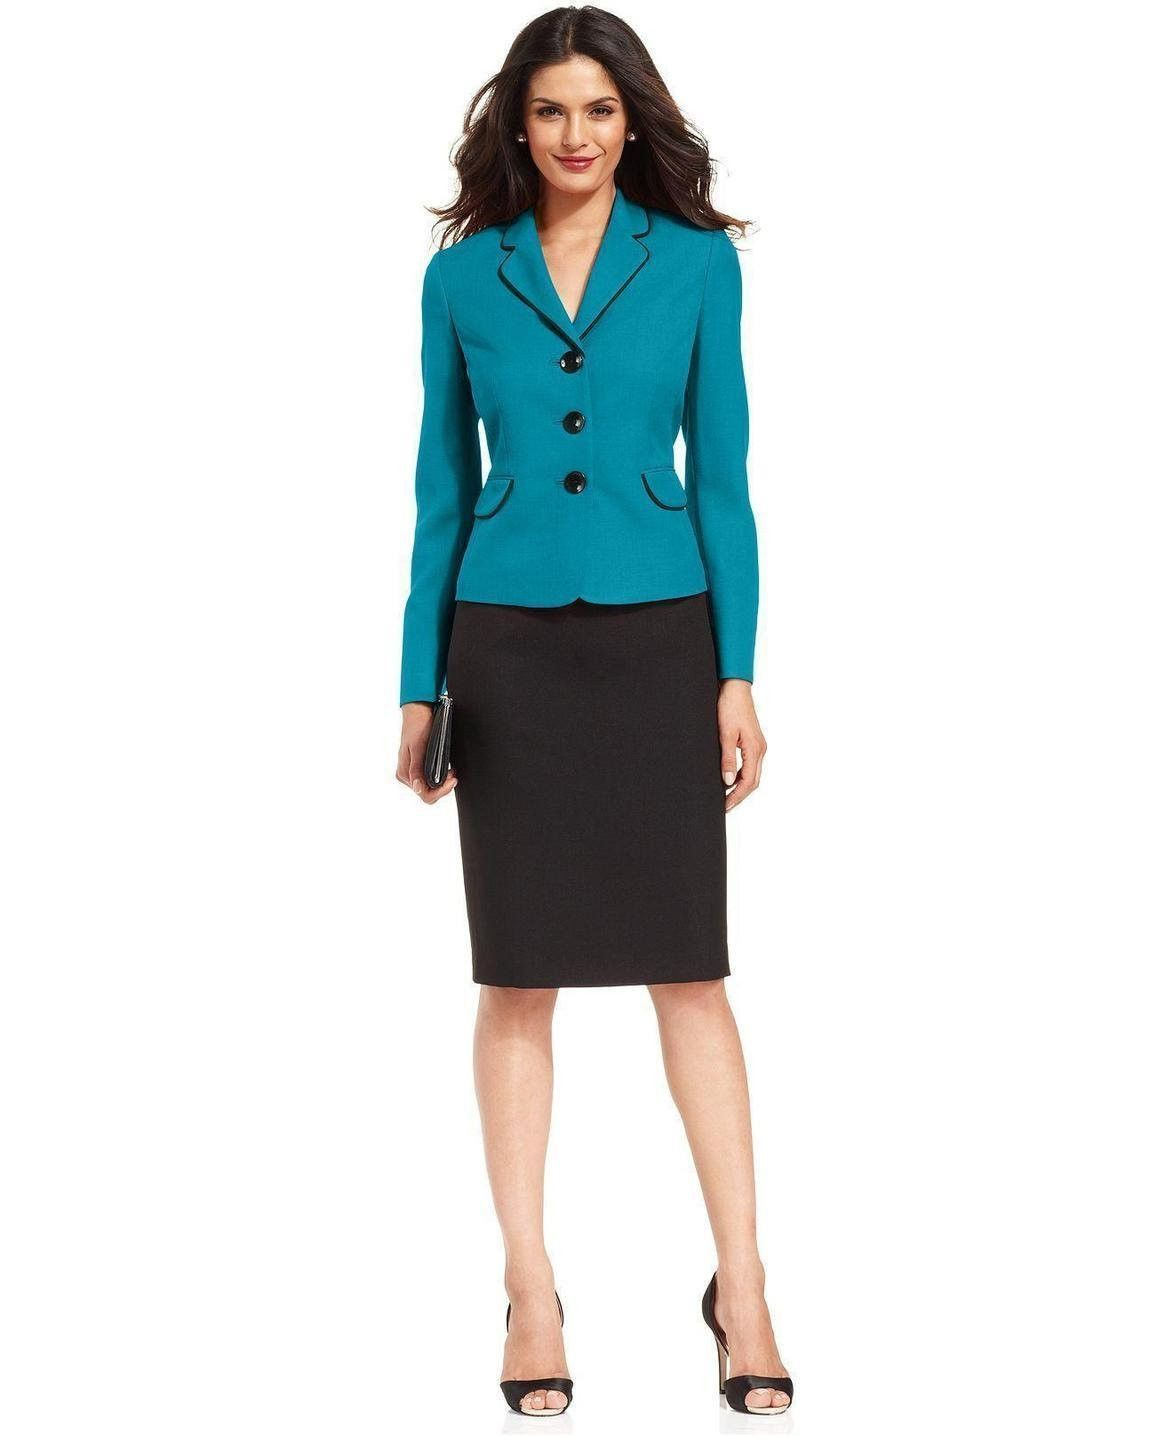 Evan Picone Contrast Jacket Skirt Suit In 2018 Conservative Skirt